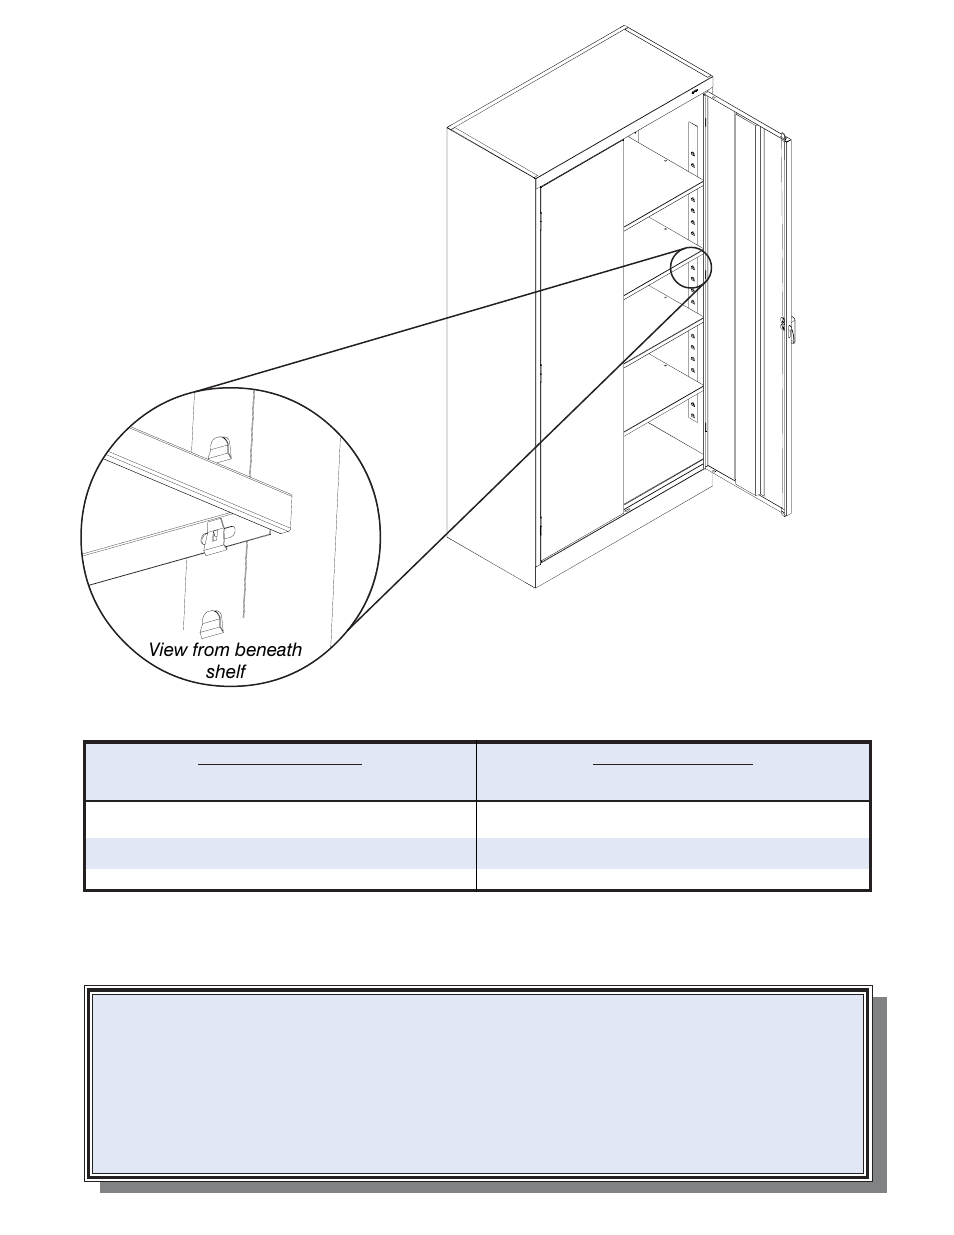 Replacement parts, Shelf adjustment, View from beneath shelf